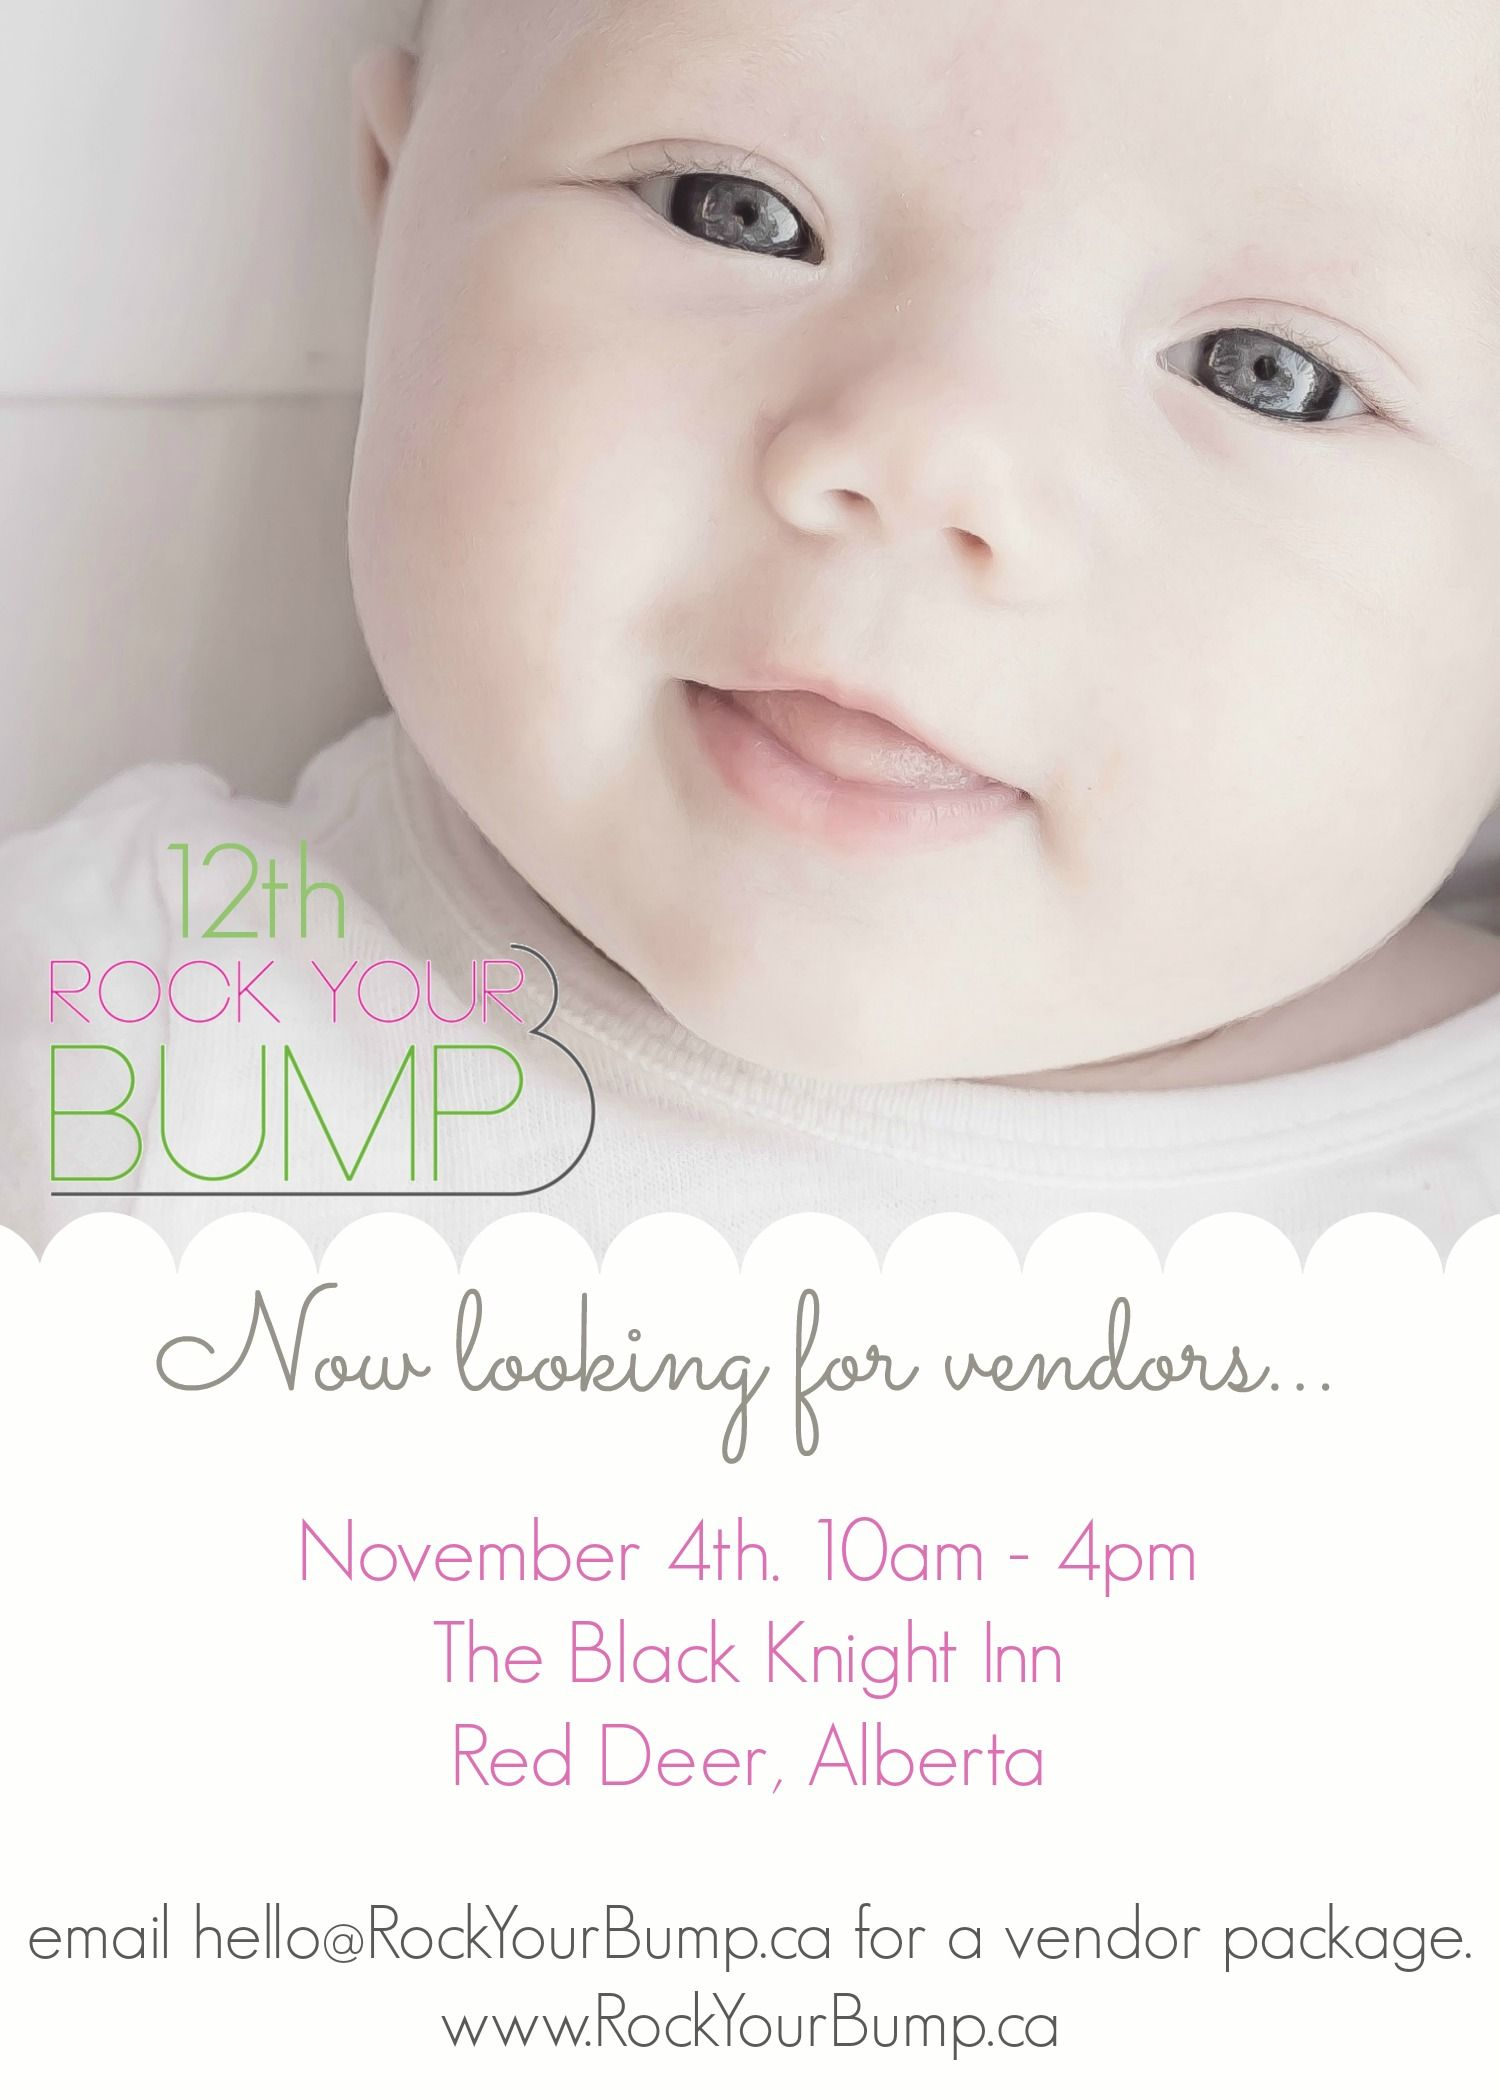 Vendor call for trade show aimed at moms and little ones